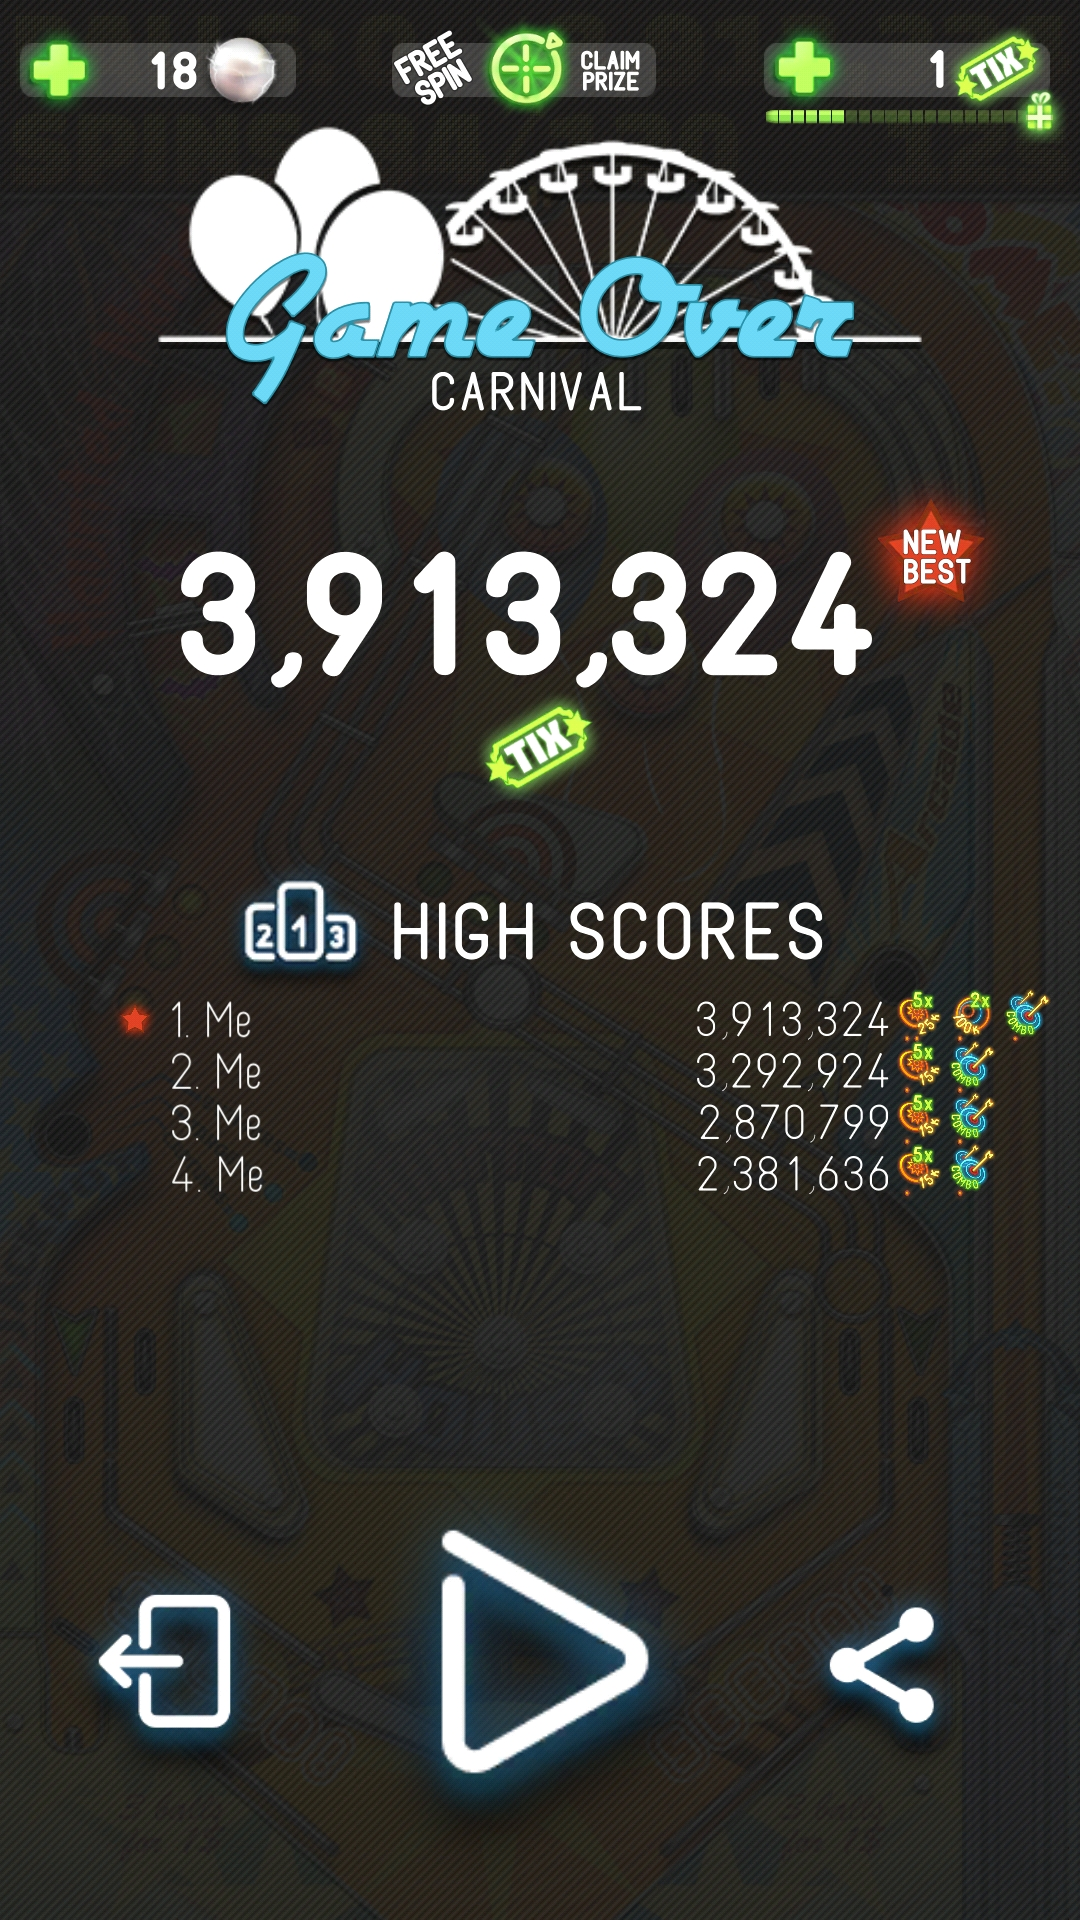 Pinball Deluxe: Carnival 3,913,324 points